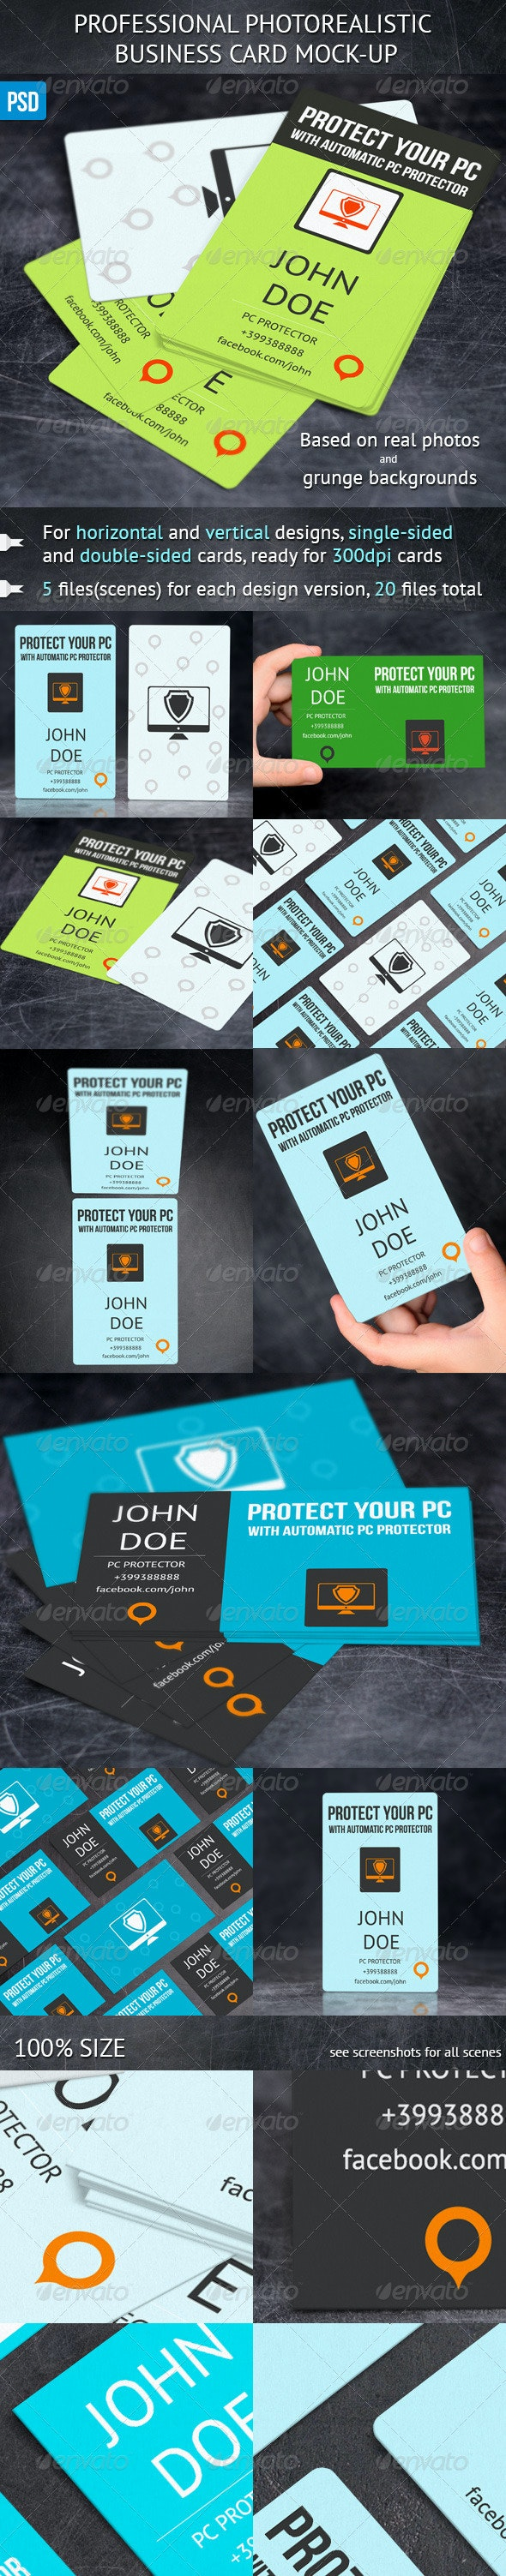 Photorealistic Business Card Mock-Ups - Business Cards Print